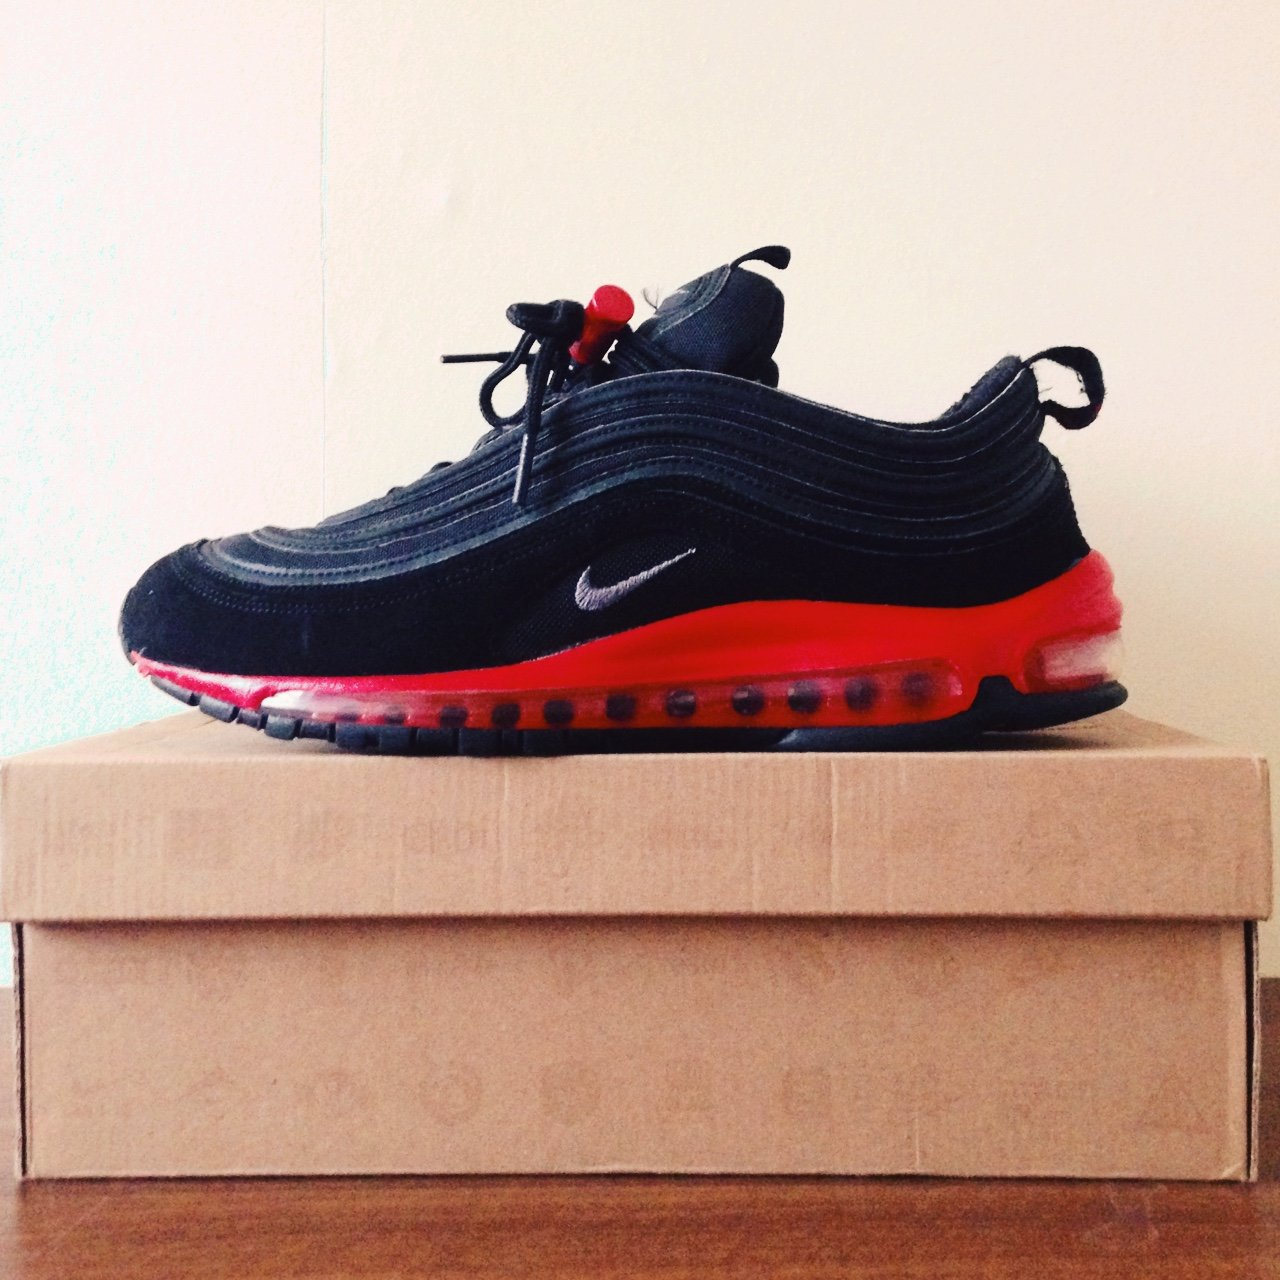 436a53f1bfd539 NIKE AIR MAX 97 black   challenge red. Come with cool lace - Depop